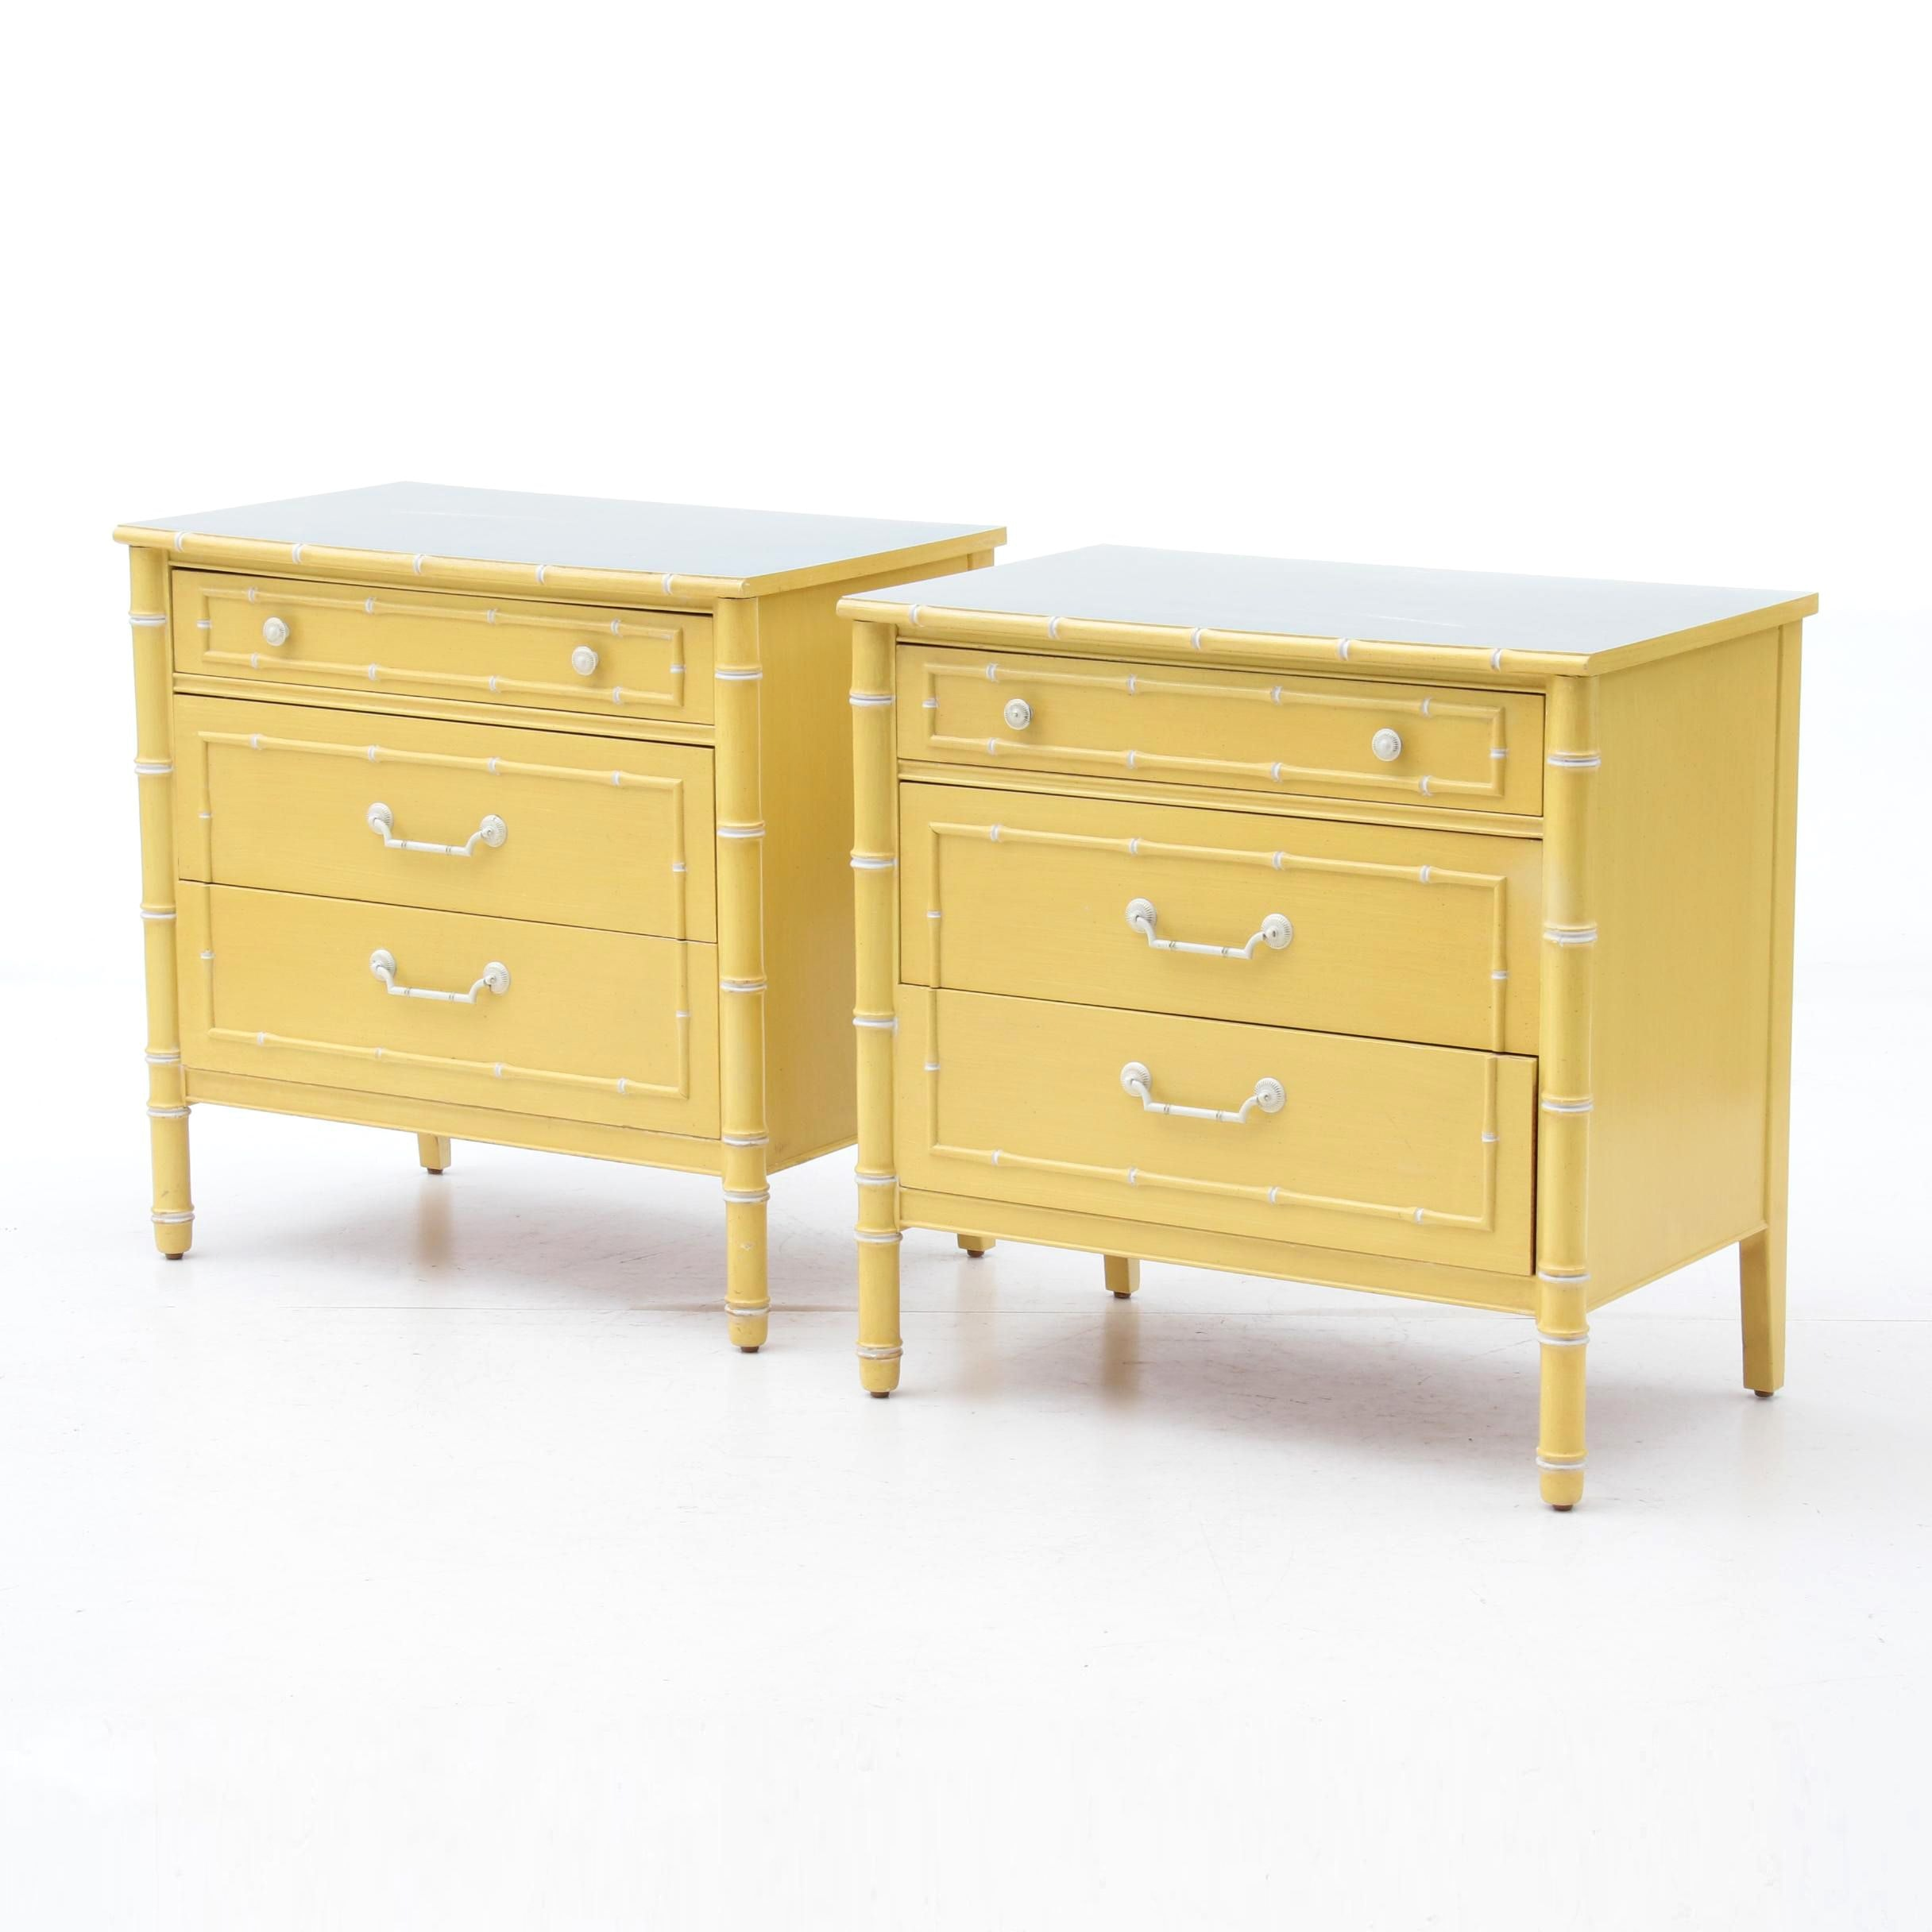 Painted Faux Bamboo Chest of Drawers by Thomasville, Mid/Late 20th Century